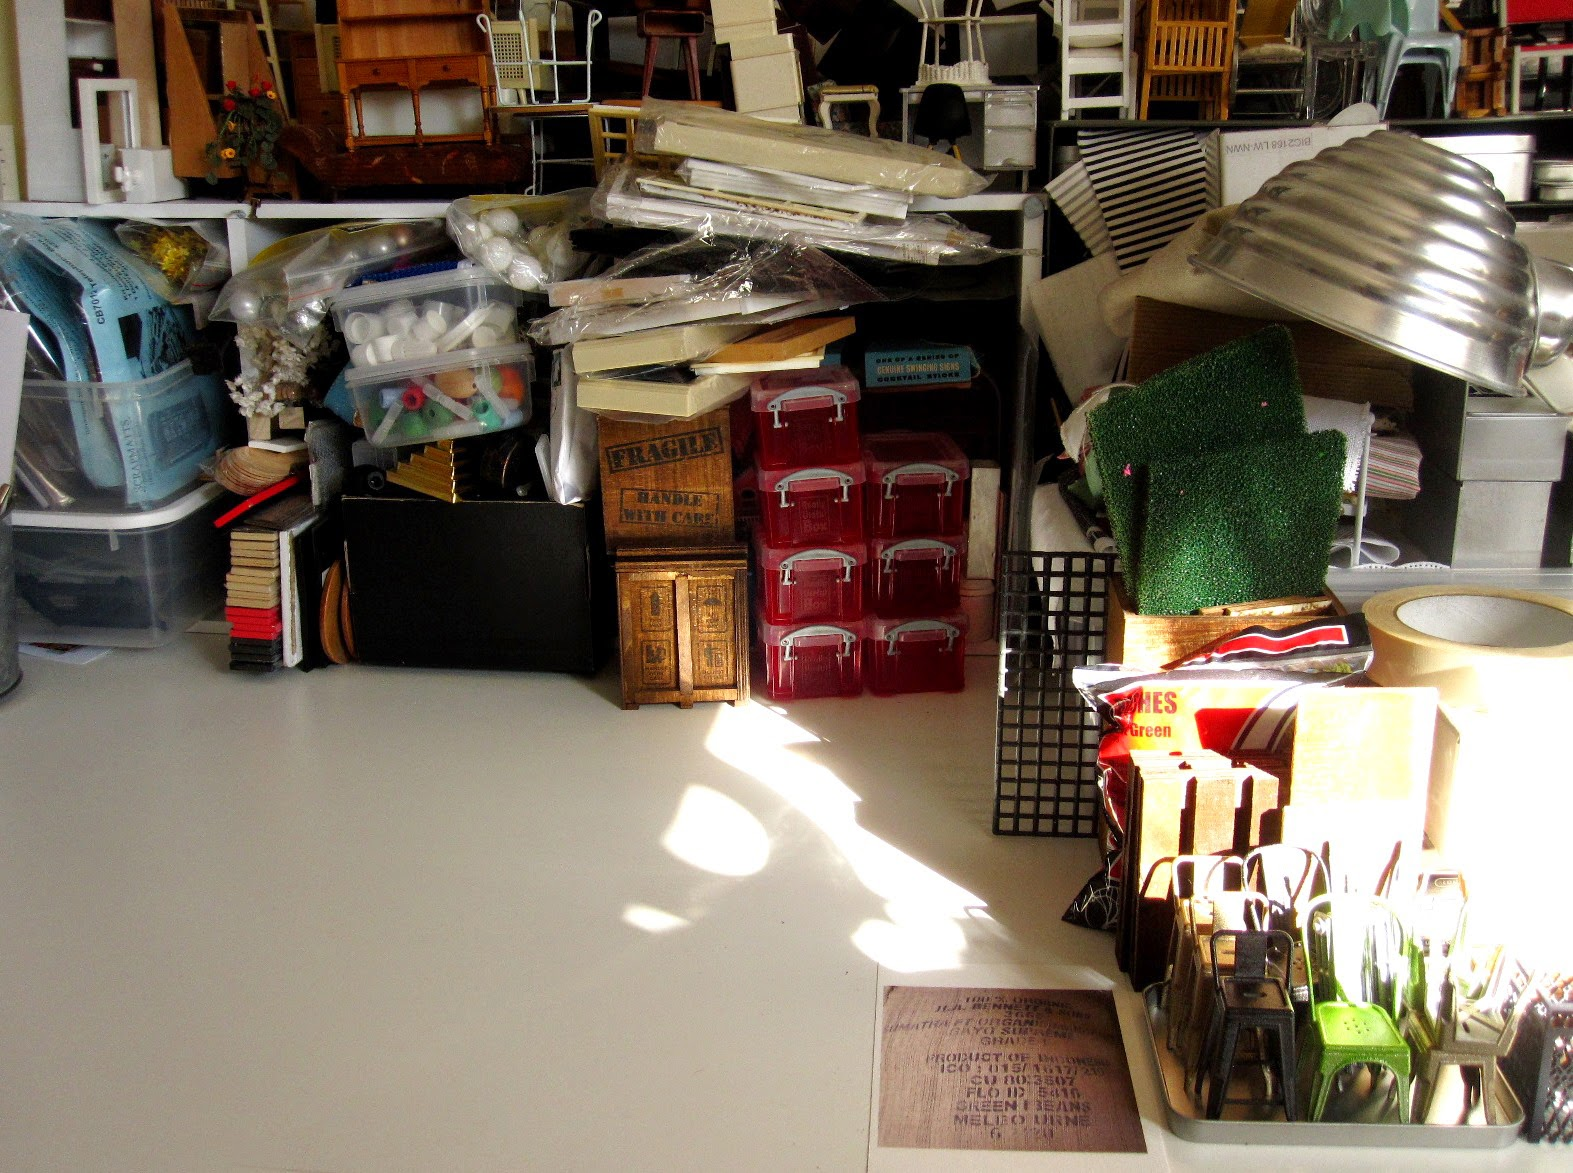 Work table with piles of dolls' house miniature furniture and supplies and a clear space in the middle.